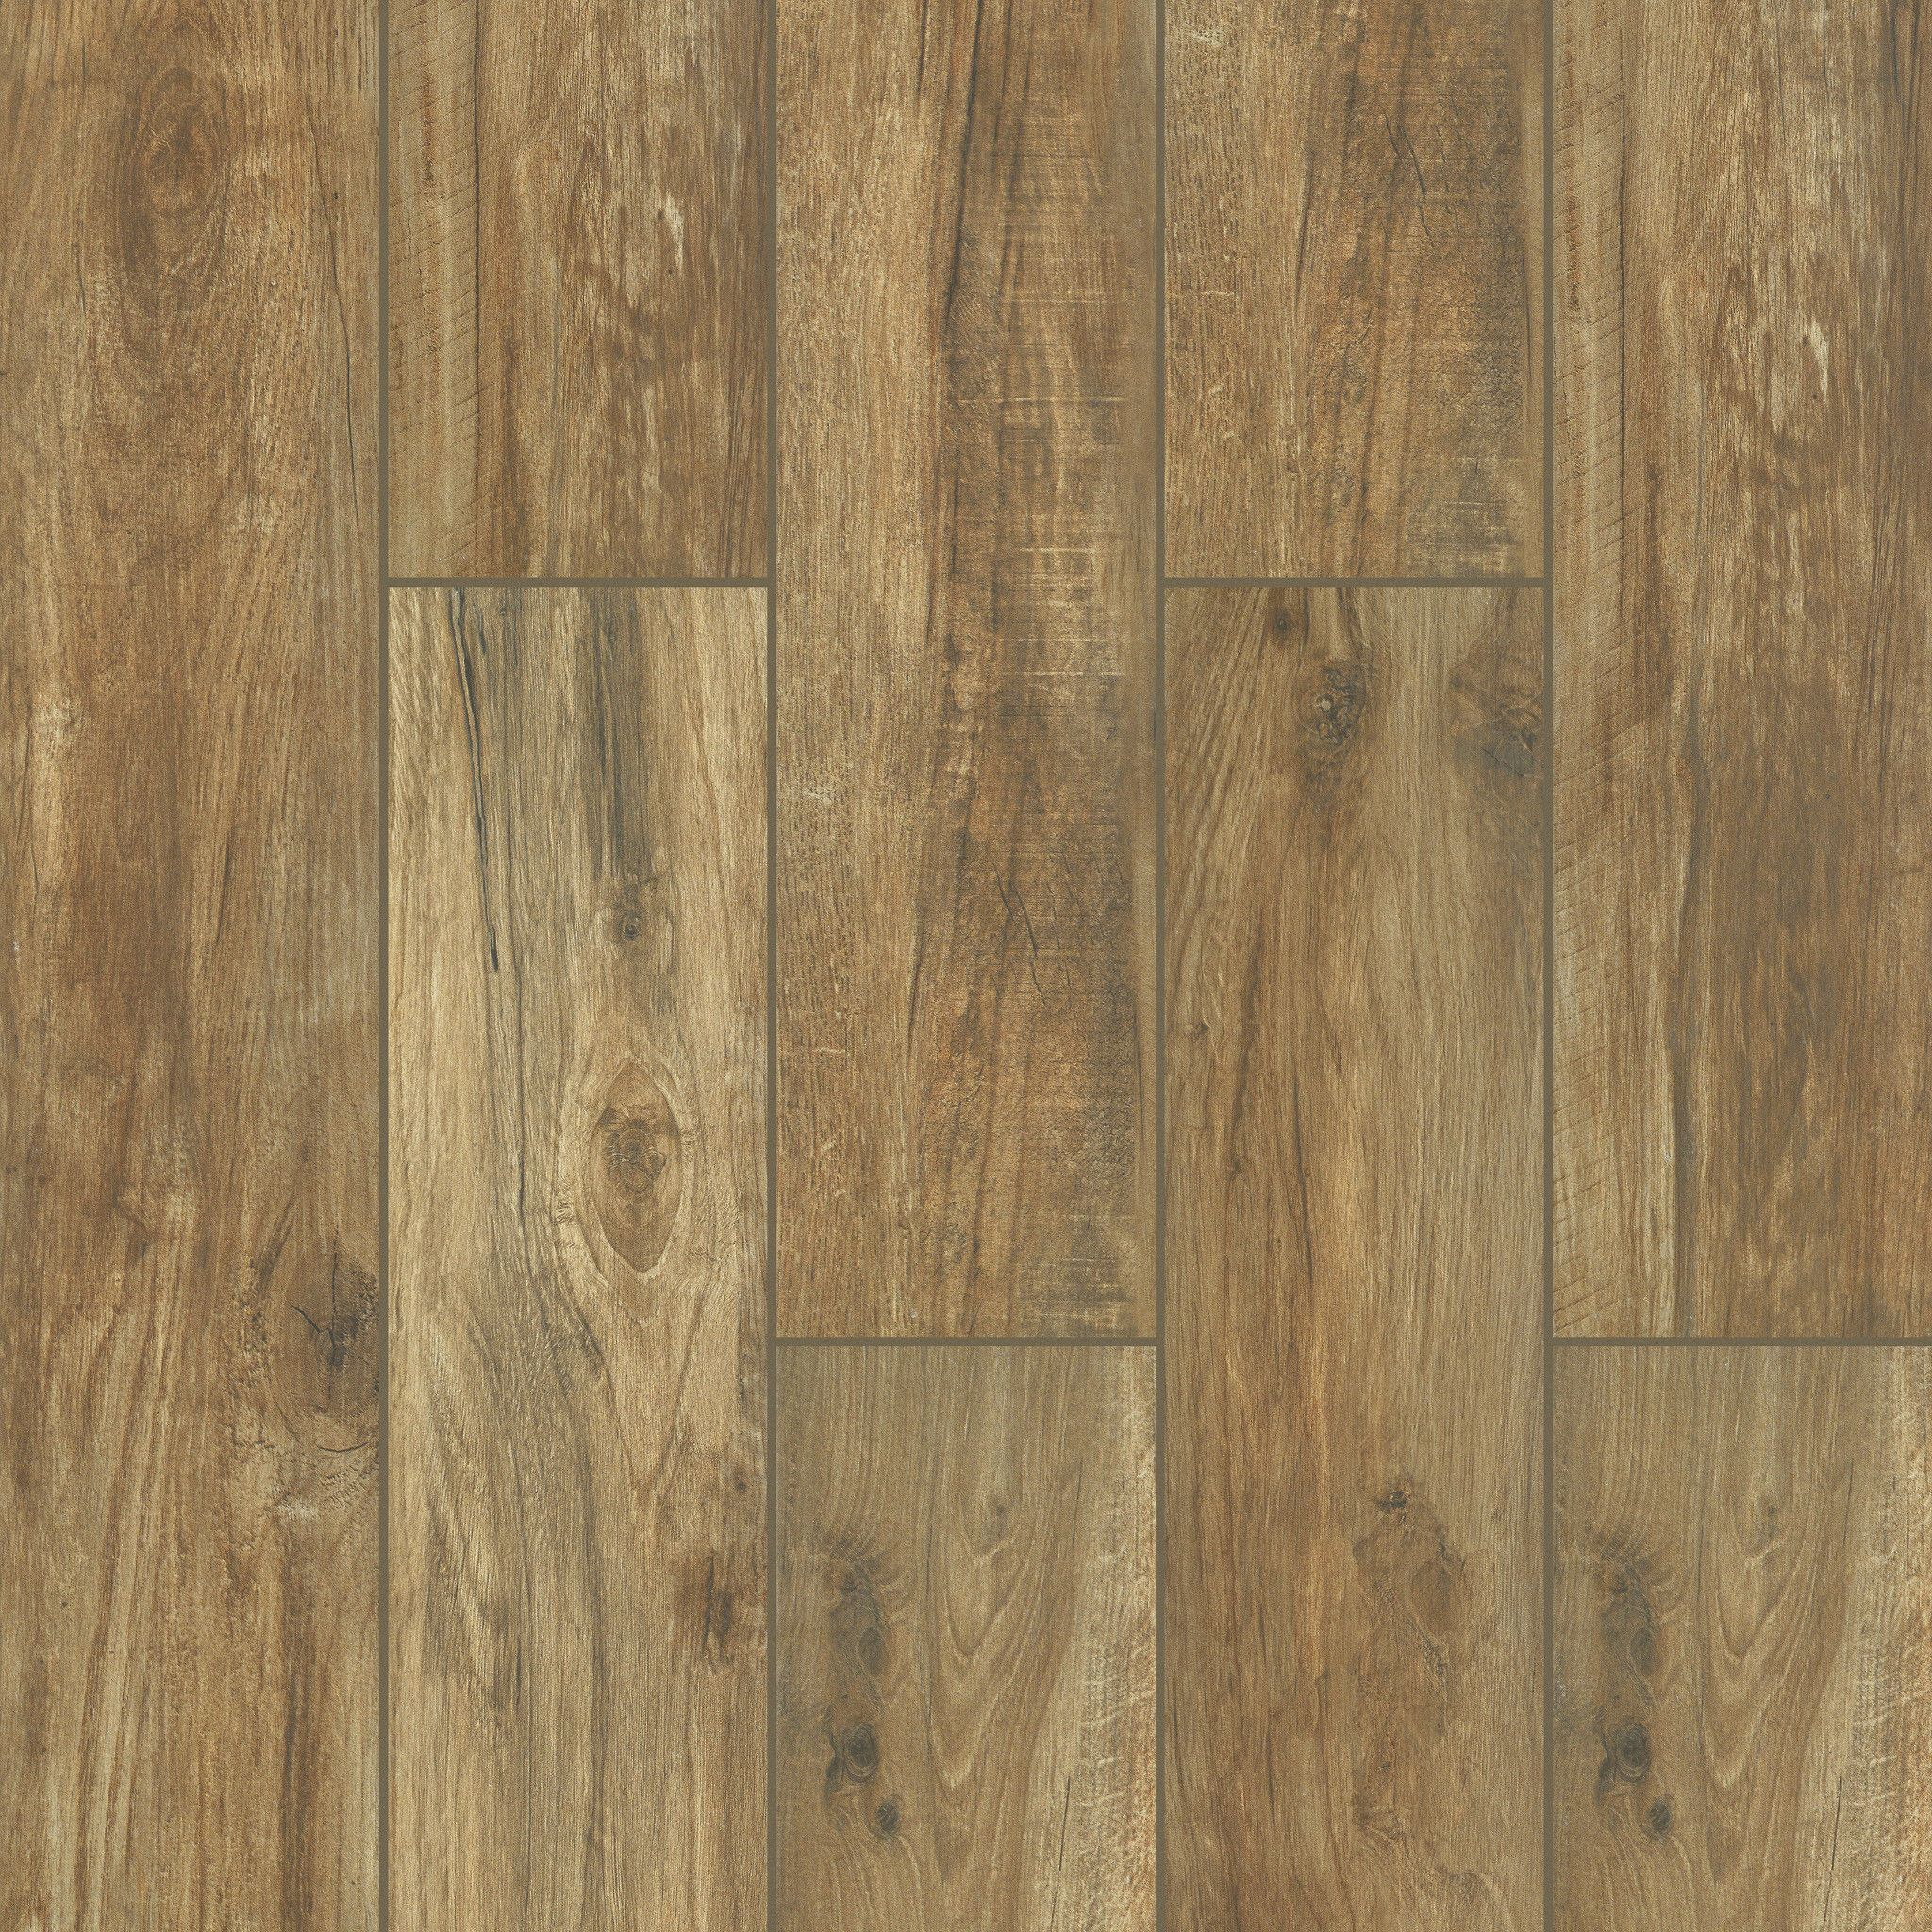 Style name and number: SAVANNAH 8″X48″ CS32V and color name and number: Honey 00200